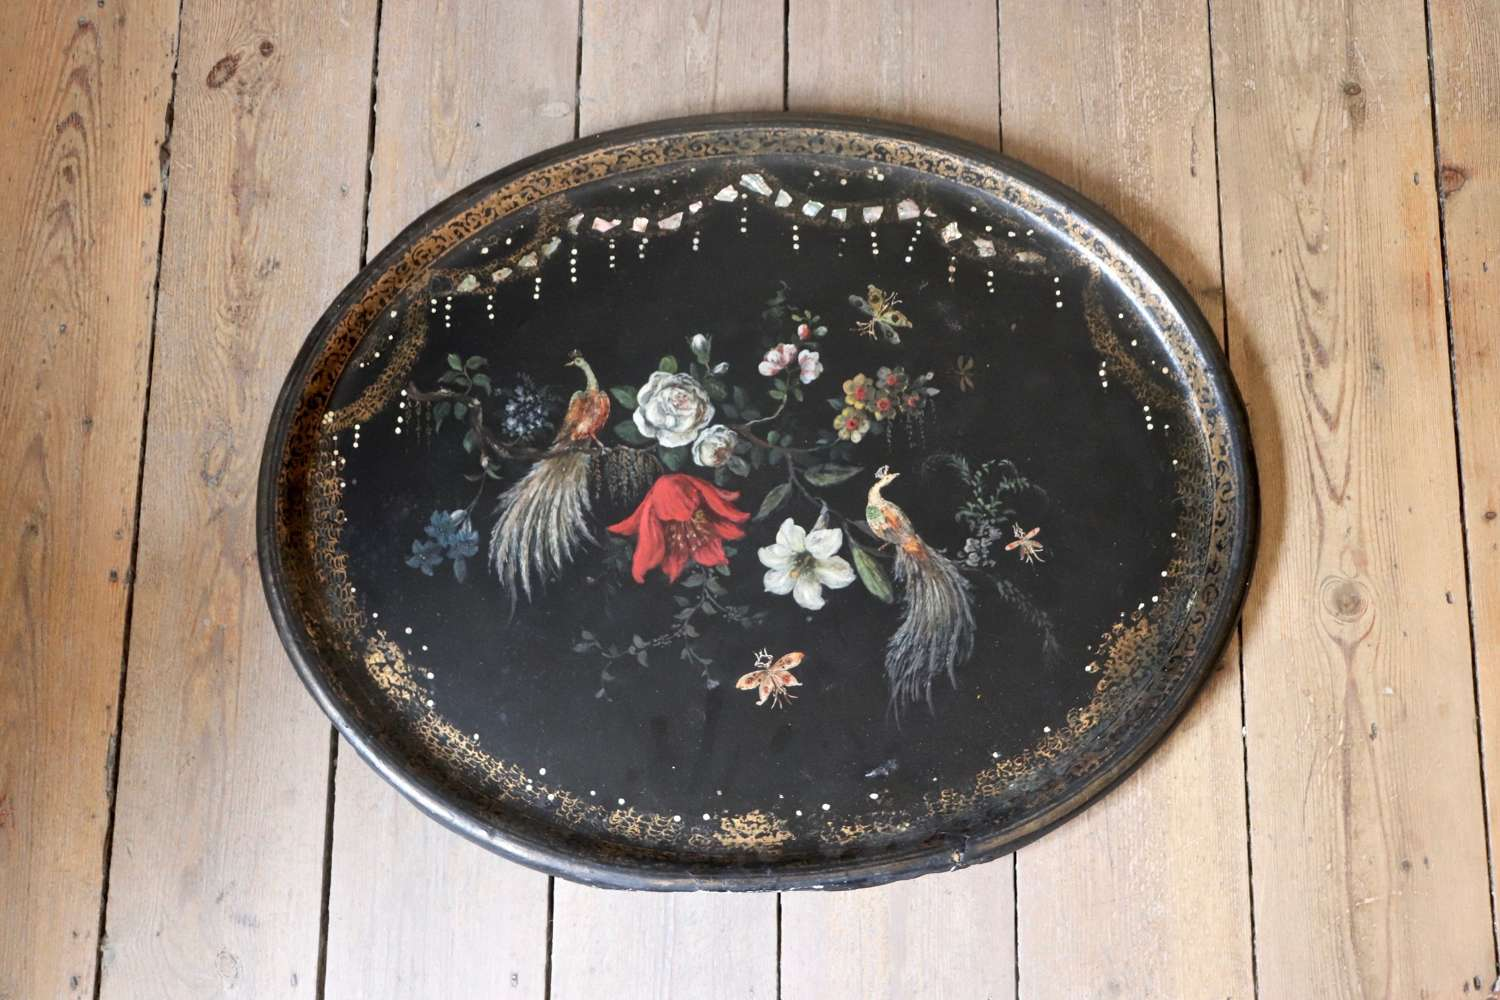 19th century papier maché tray with inlaid mother of pearl